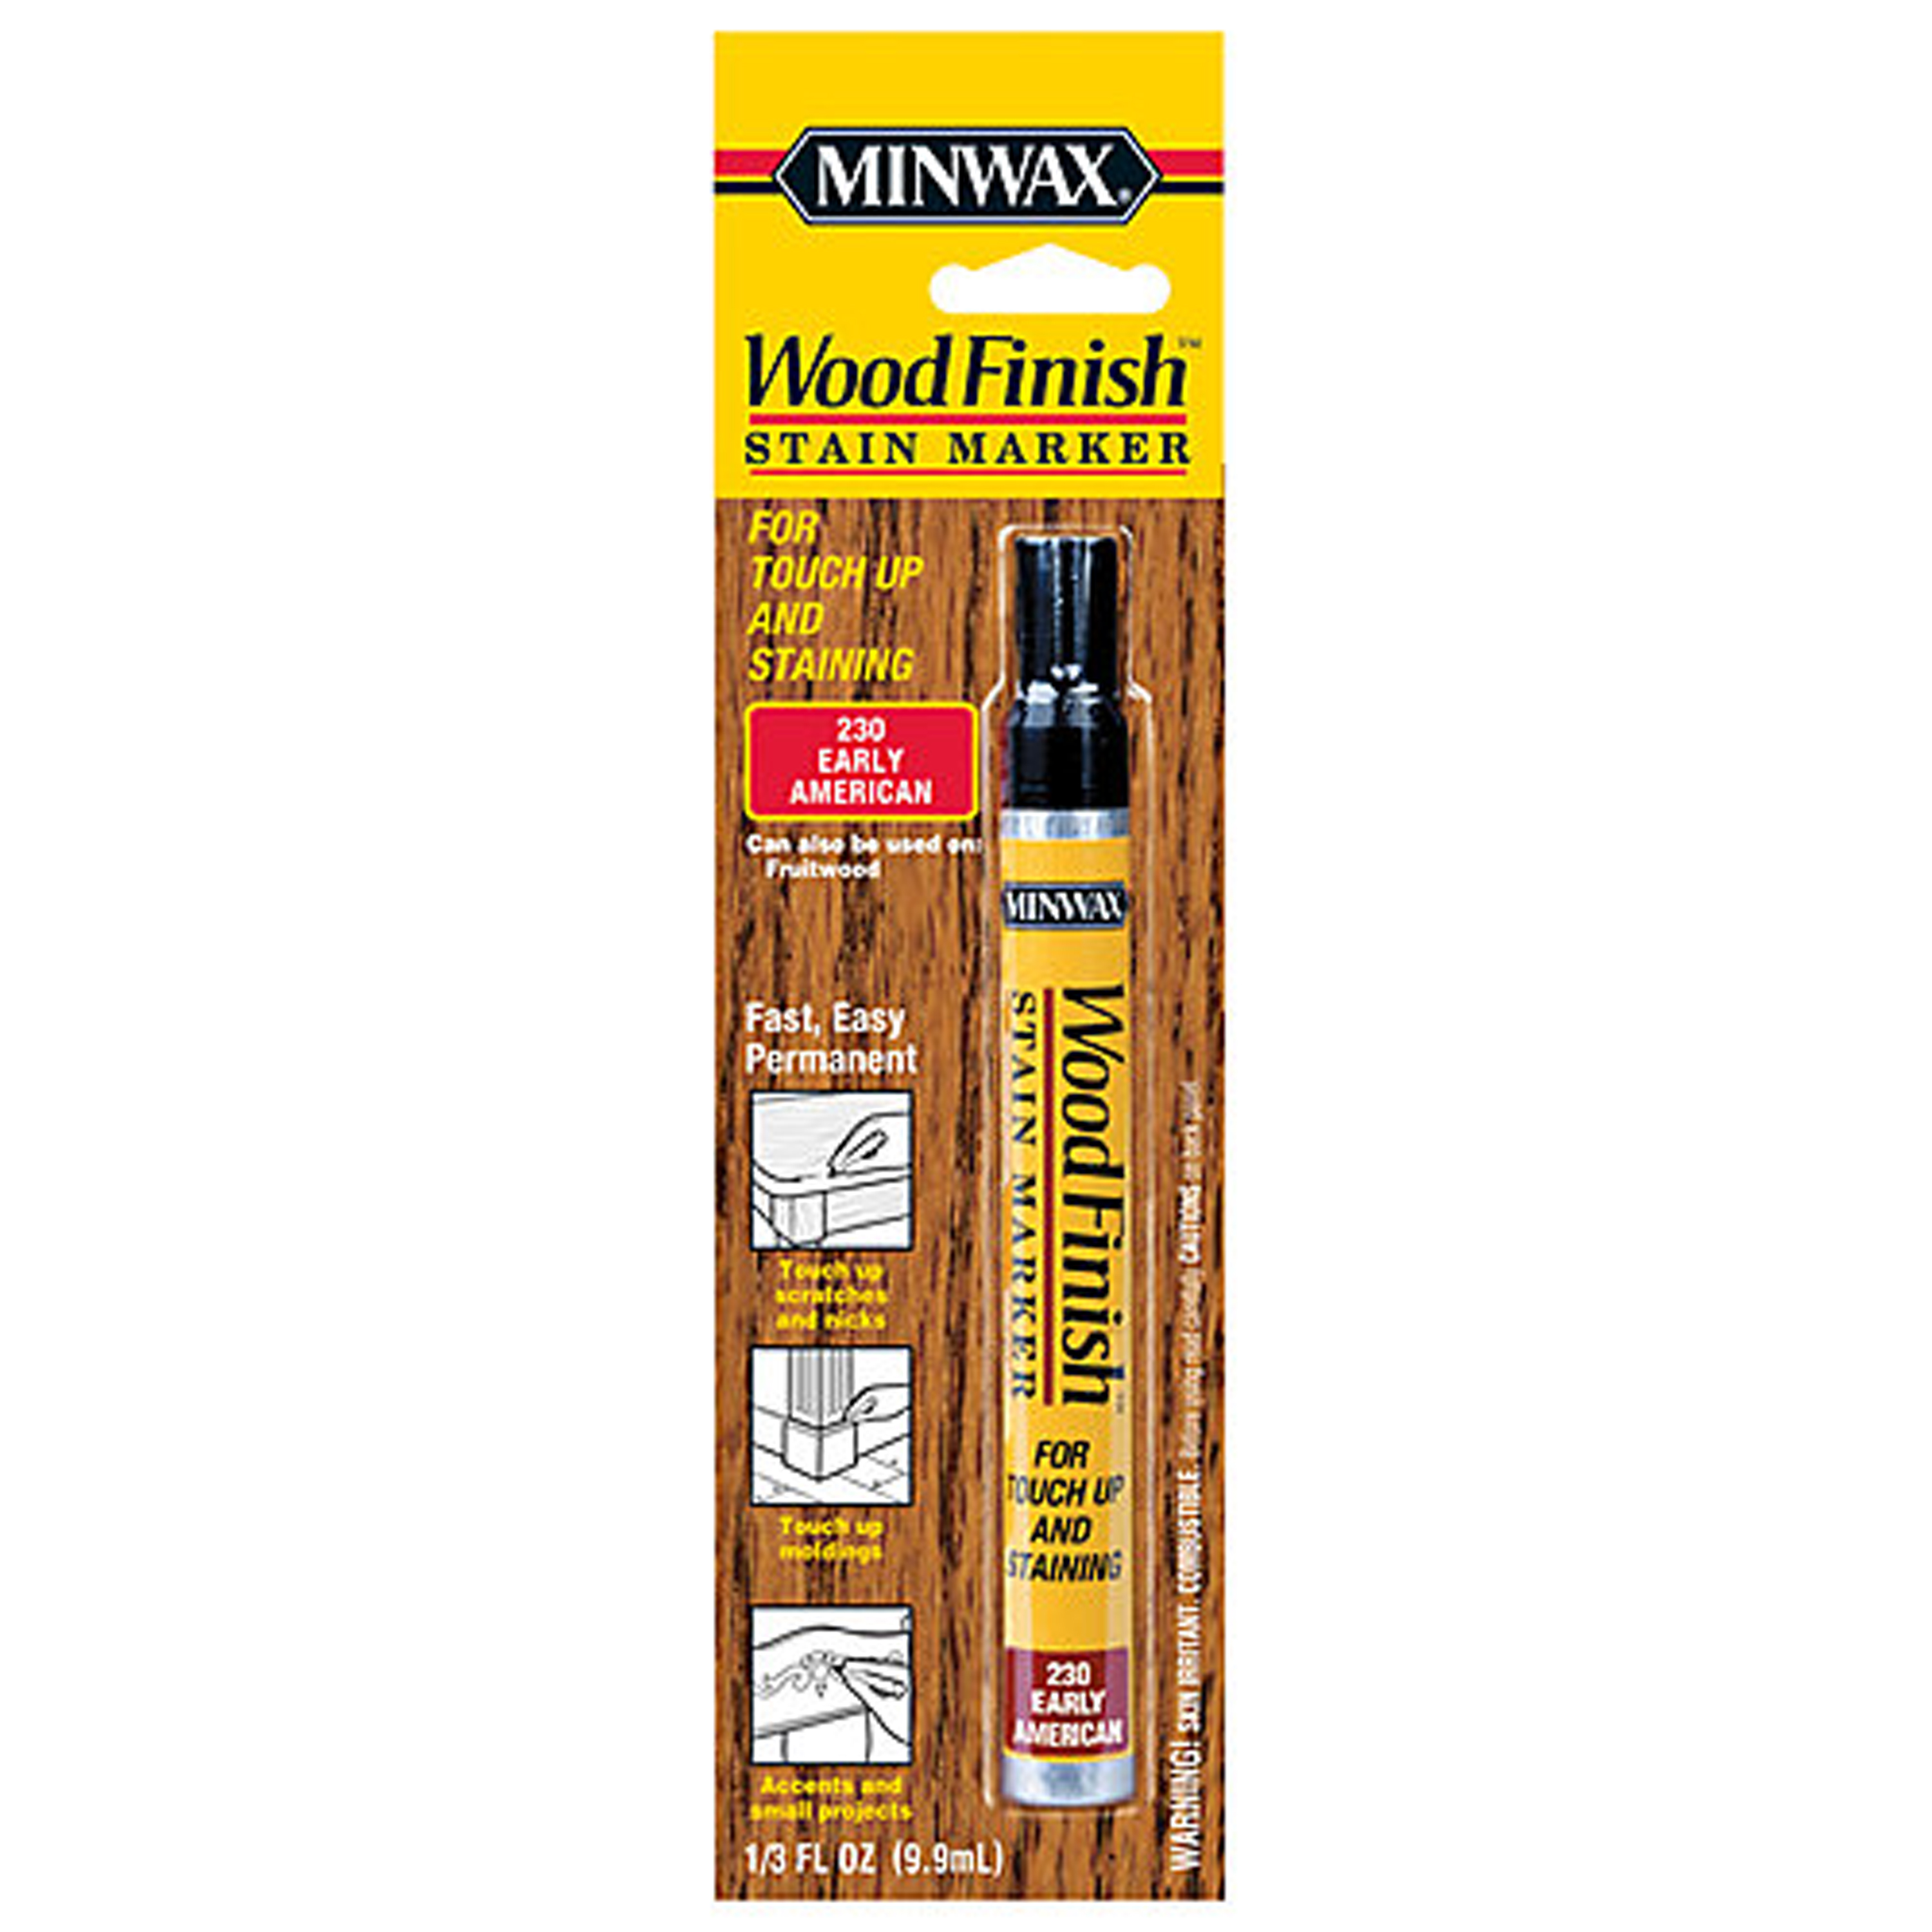 Attrayant Minwax Wood Finish Stain Marker, 1/3 Oz, Early American